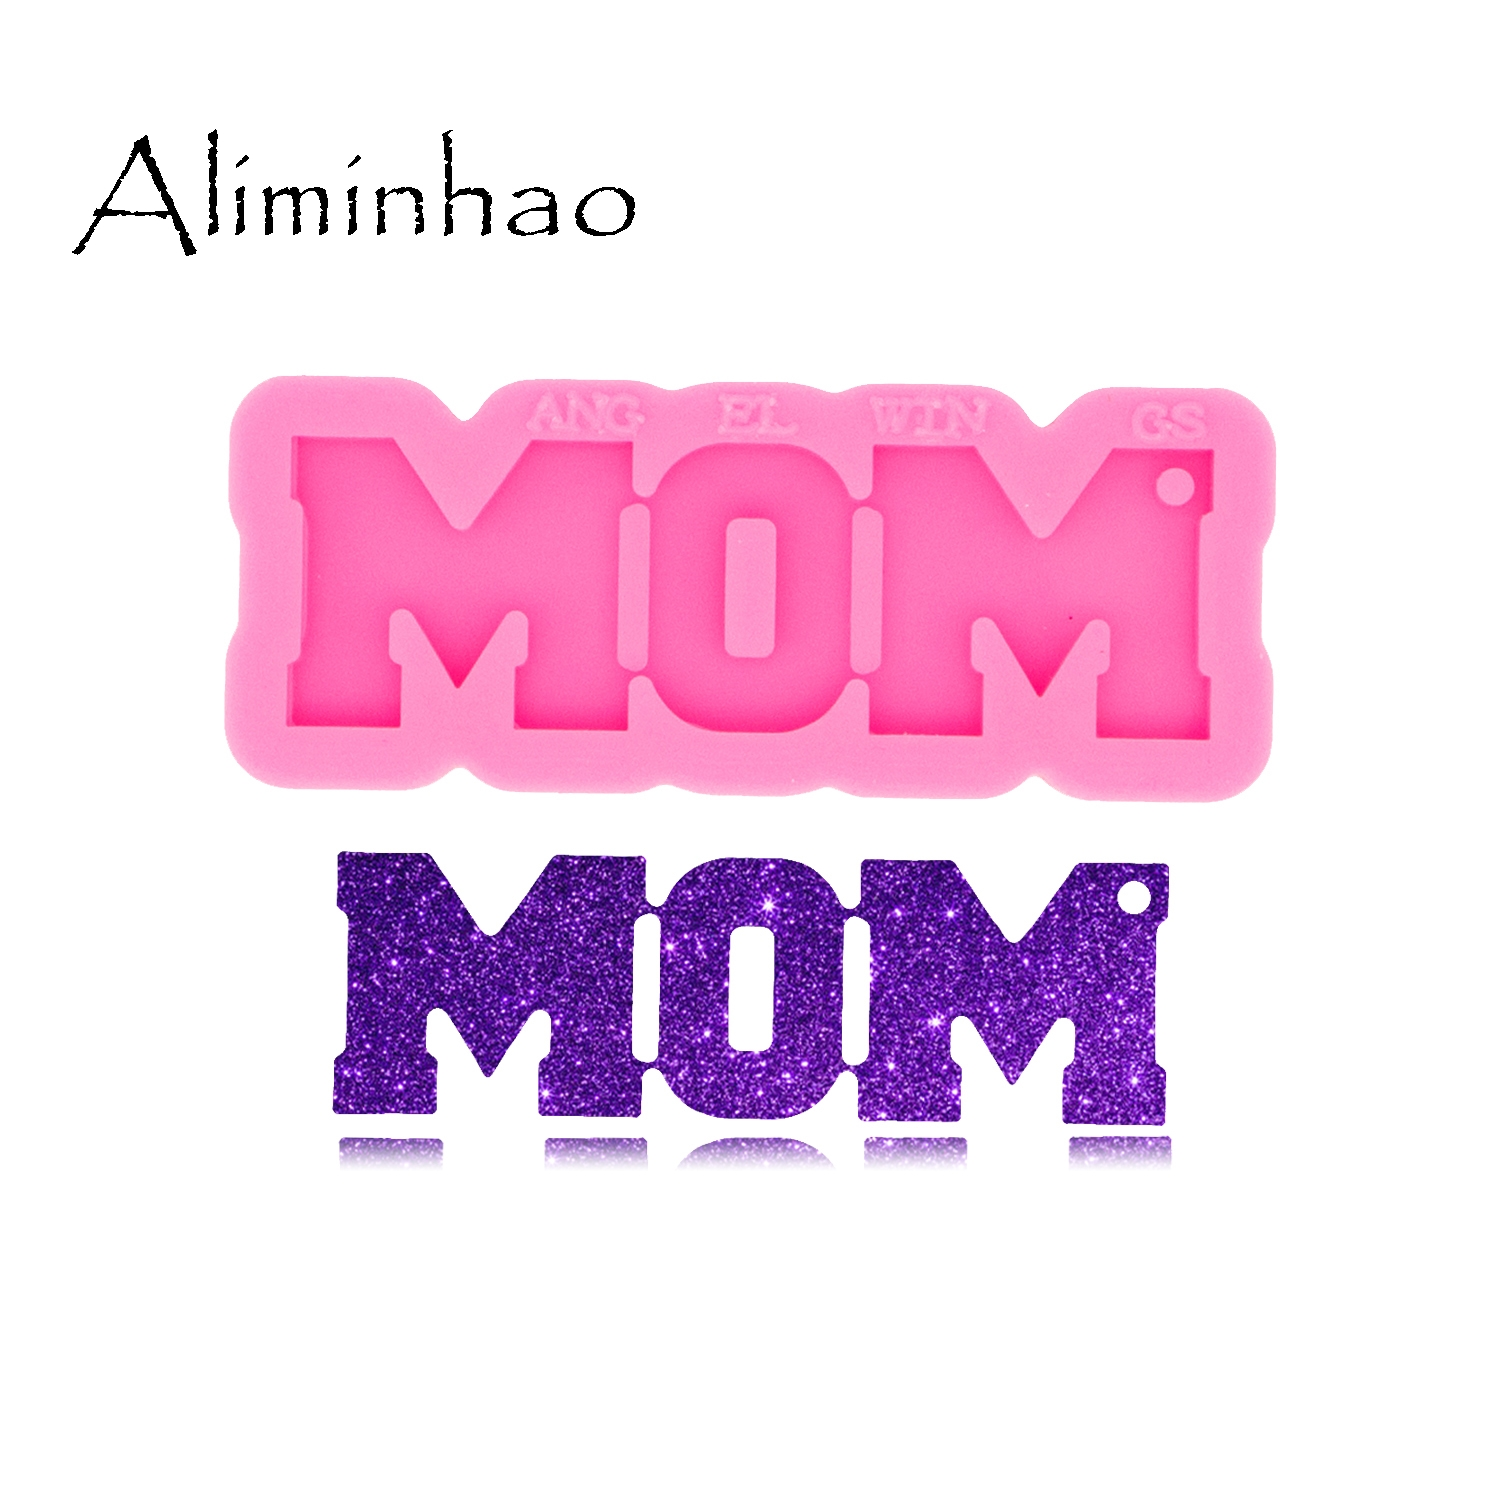 DY0531 Shiny Glossy MOM/DAD/SIS/ BRO/PAPA Keychain mold UV Resin Silicone Mould Craft For DIY Necklace Charms Making Jewelry